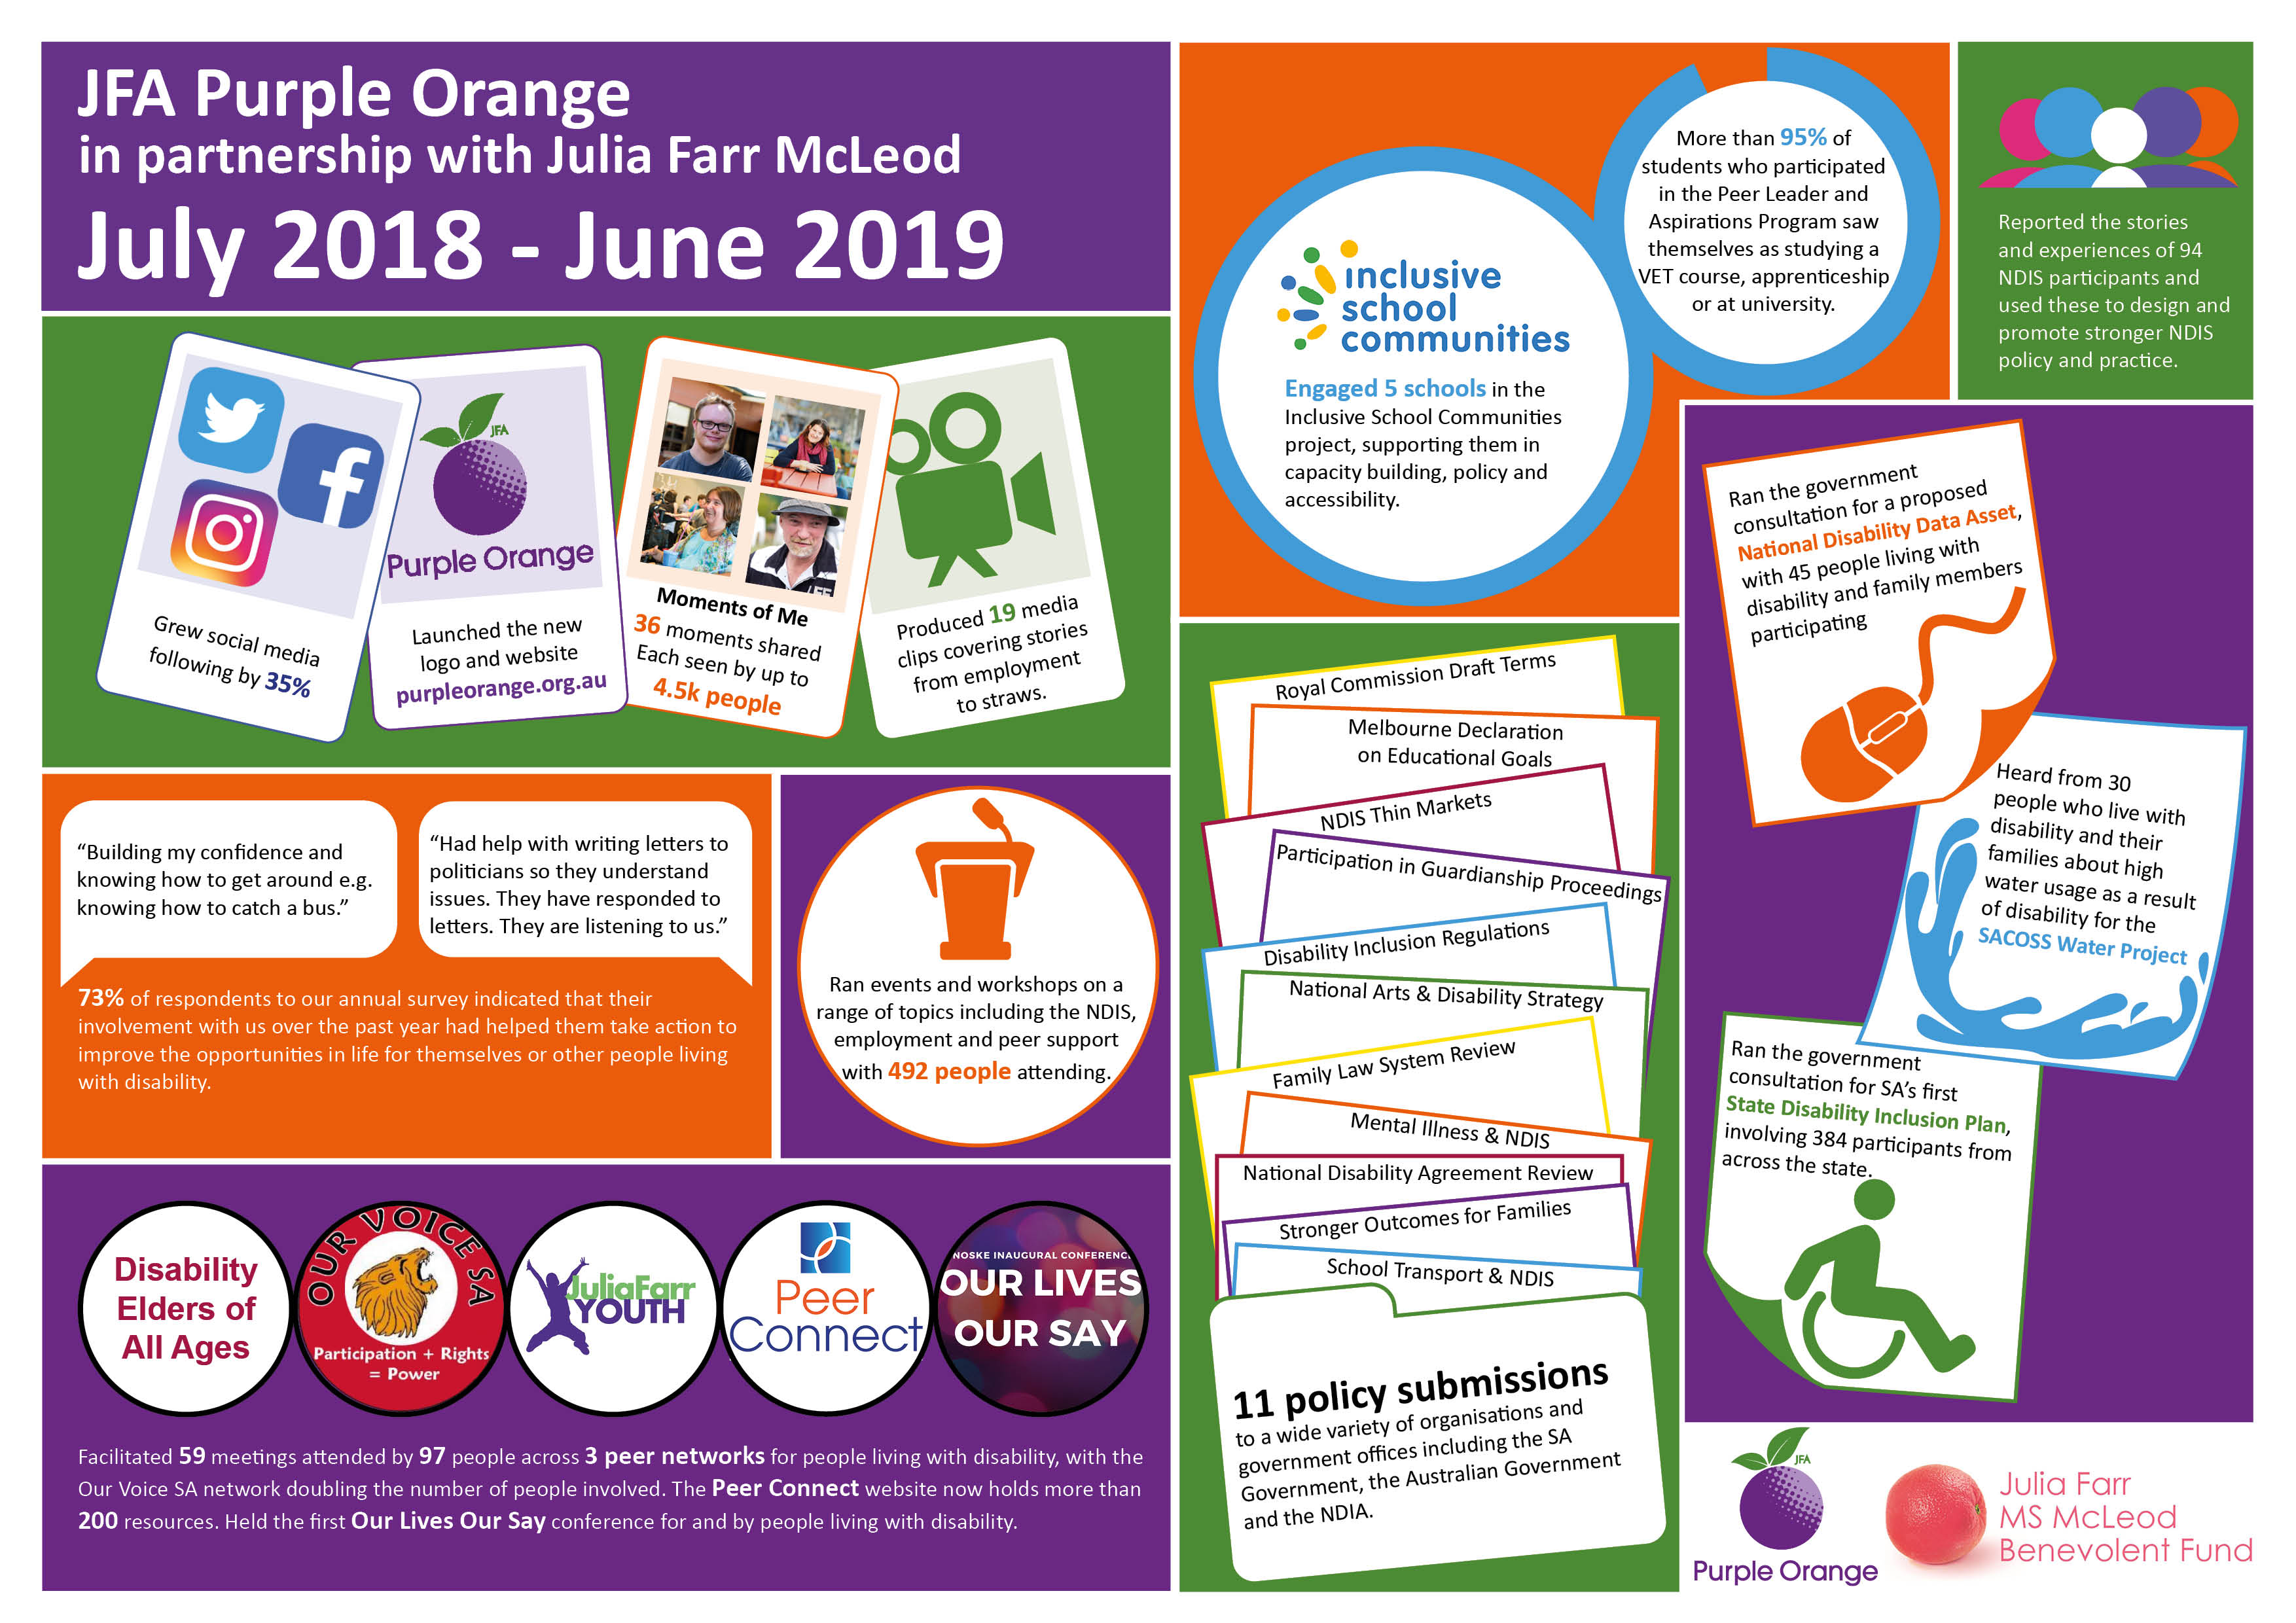 This infographic shows some of the work JFA Purple Orange achieved between July 2018 and June 2019. Detail is outlined below image.